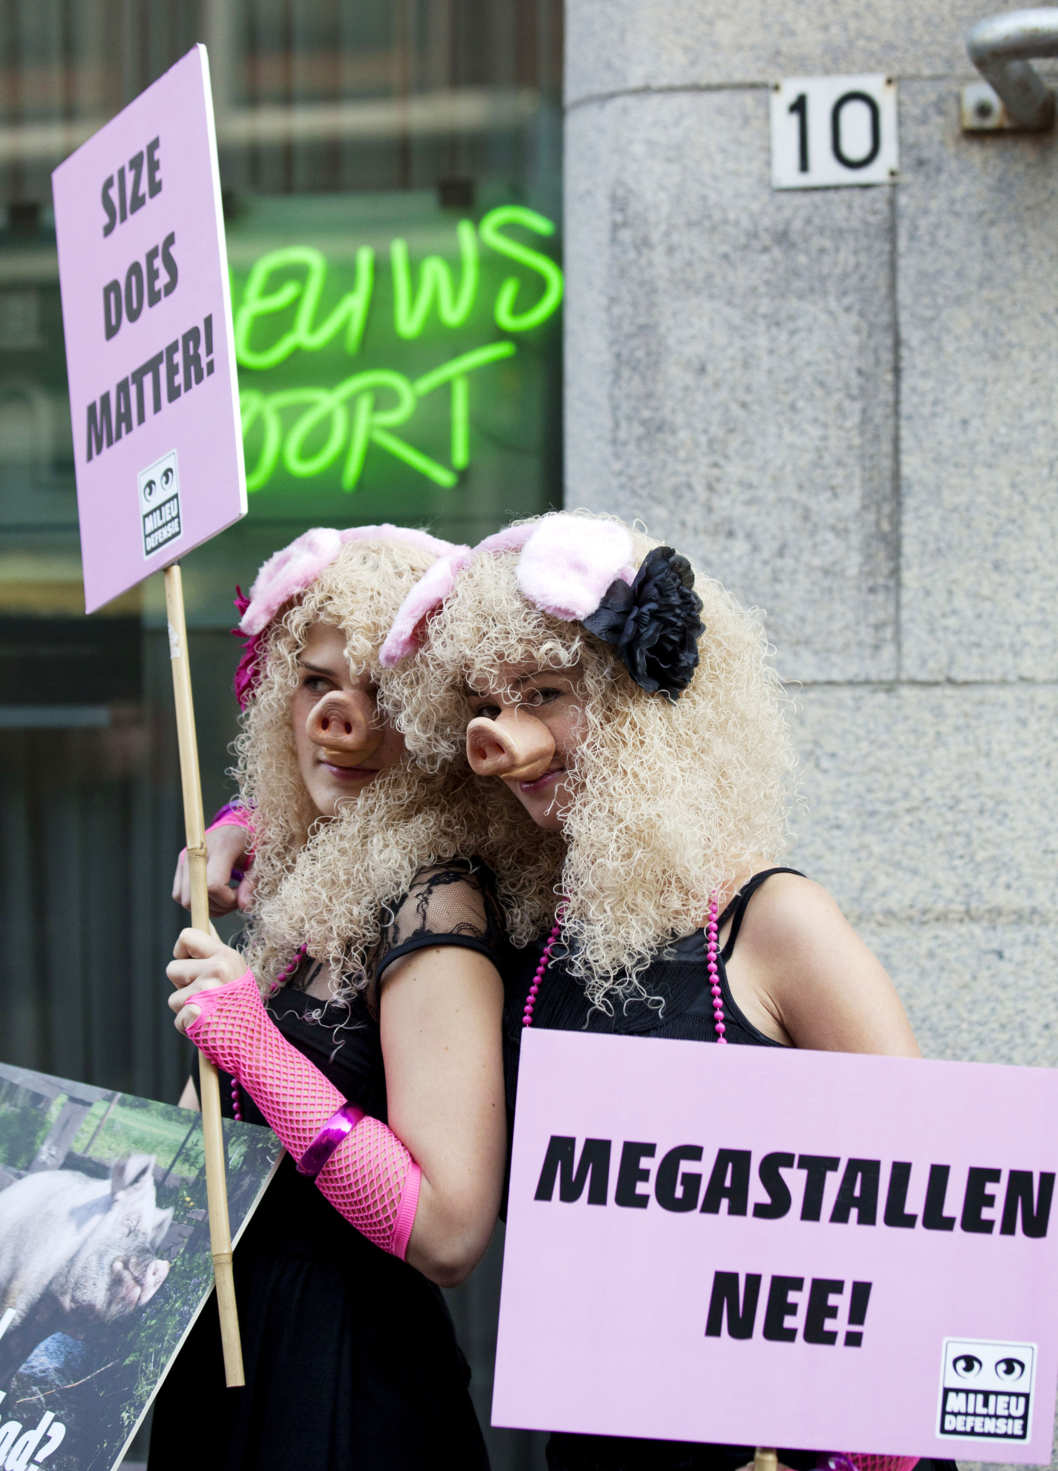 Two members of Dutch environmentalist group Milieudefensie (Environmental Defence) wear Miss Piggy costumes as they join a protest against the further expansion of livestock farming in The Hague on September 23, 2011.  AFP PHOTO/ANP/PHIL NIJHUIS netherlands out - belgium out (Photo credit should read PHIL NIJHUIS/AFP/Getty Images)